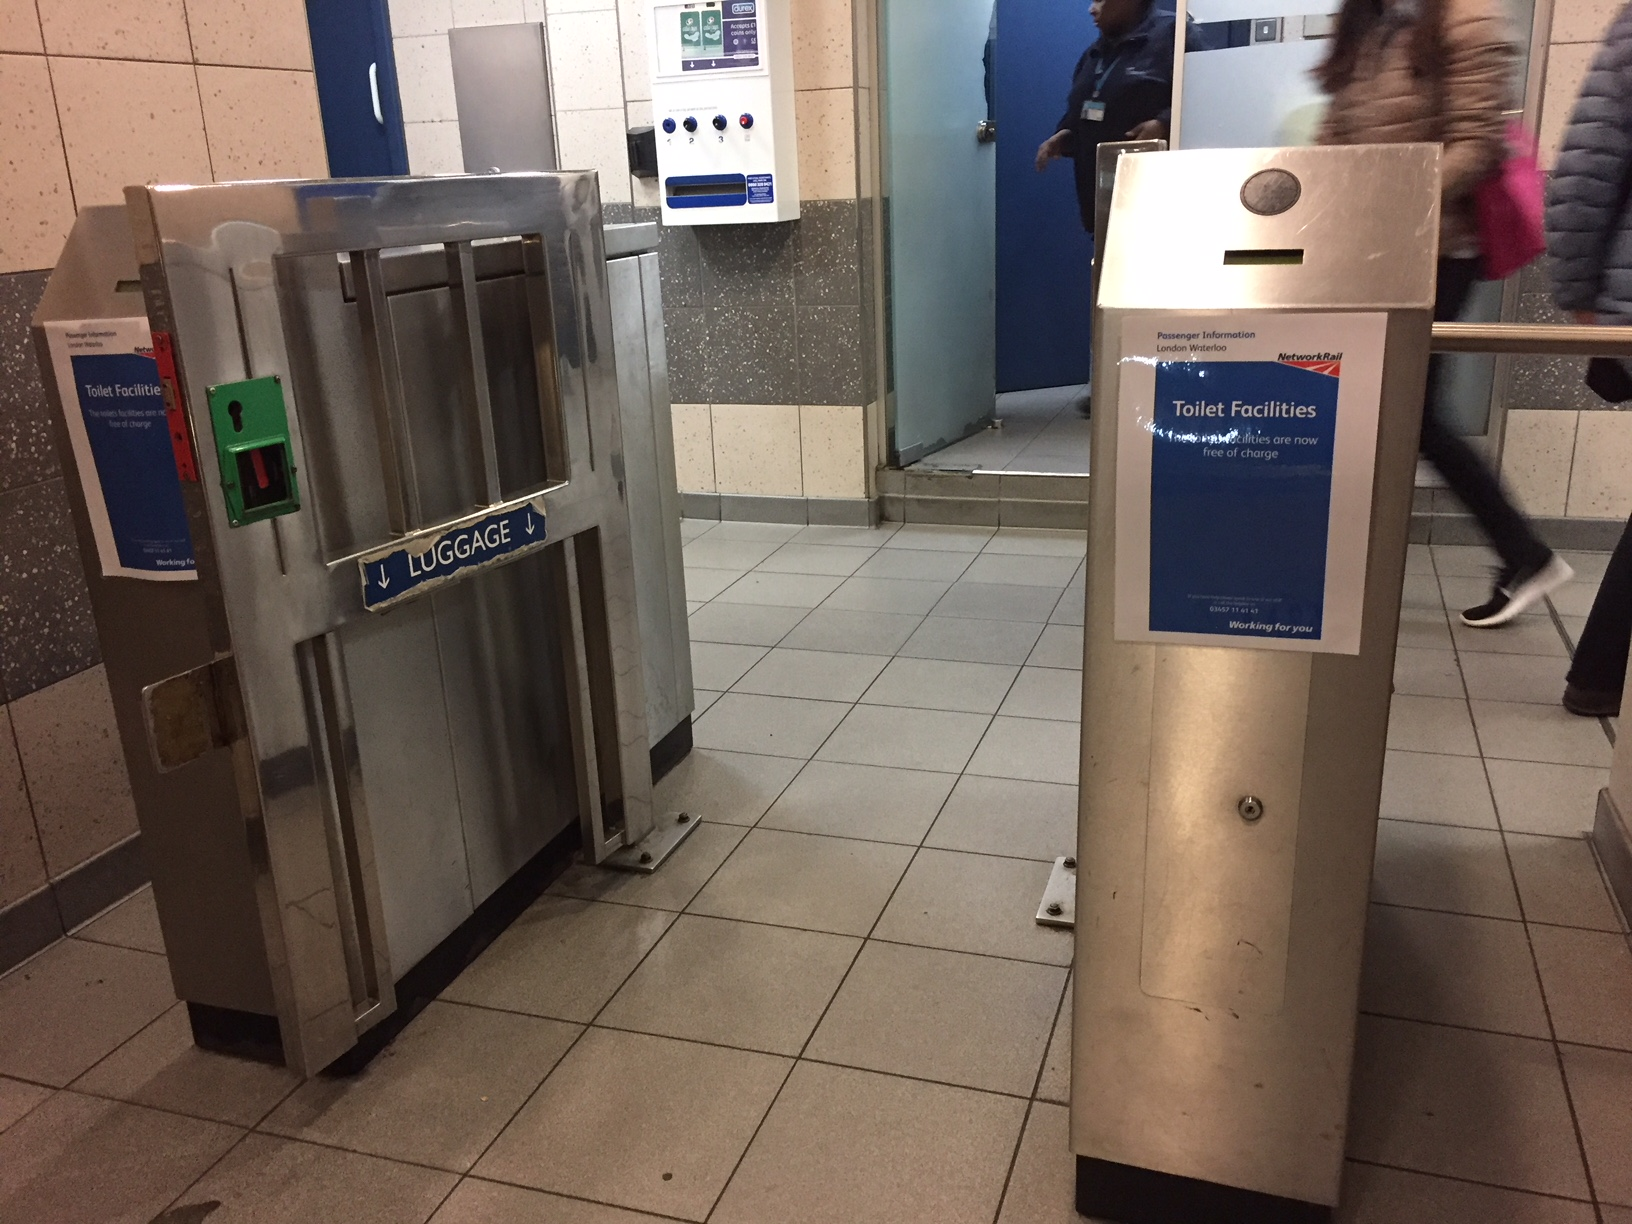 Network Rail drops 30p charge to use Waterloo toilets